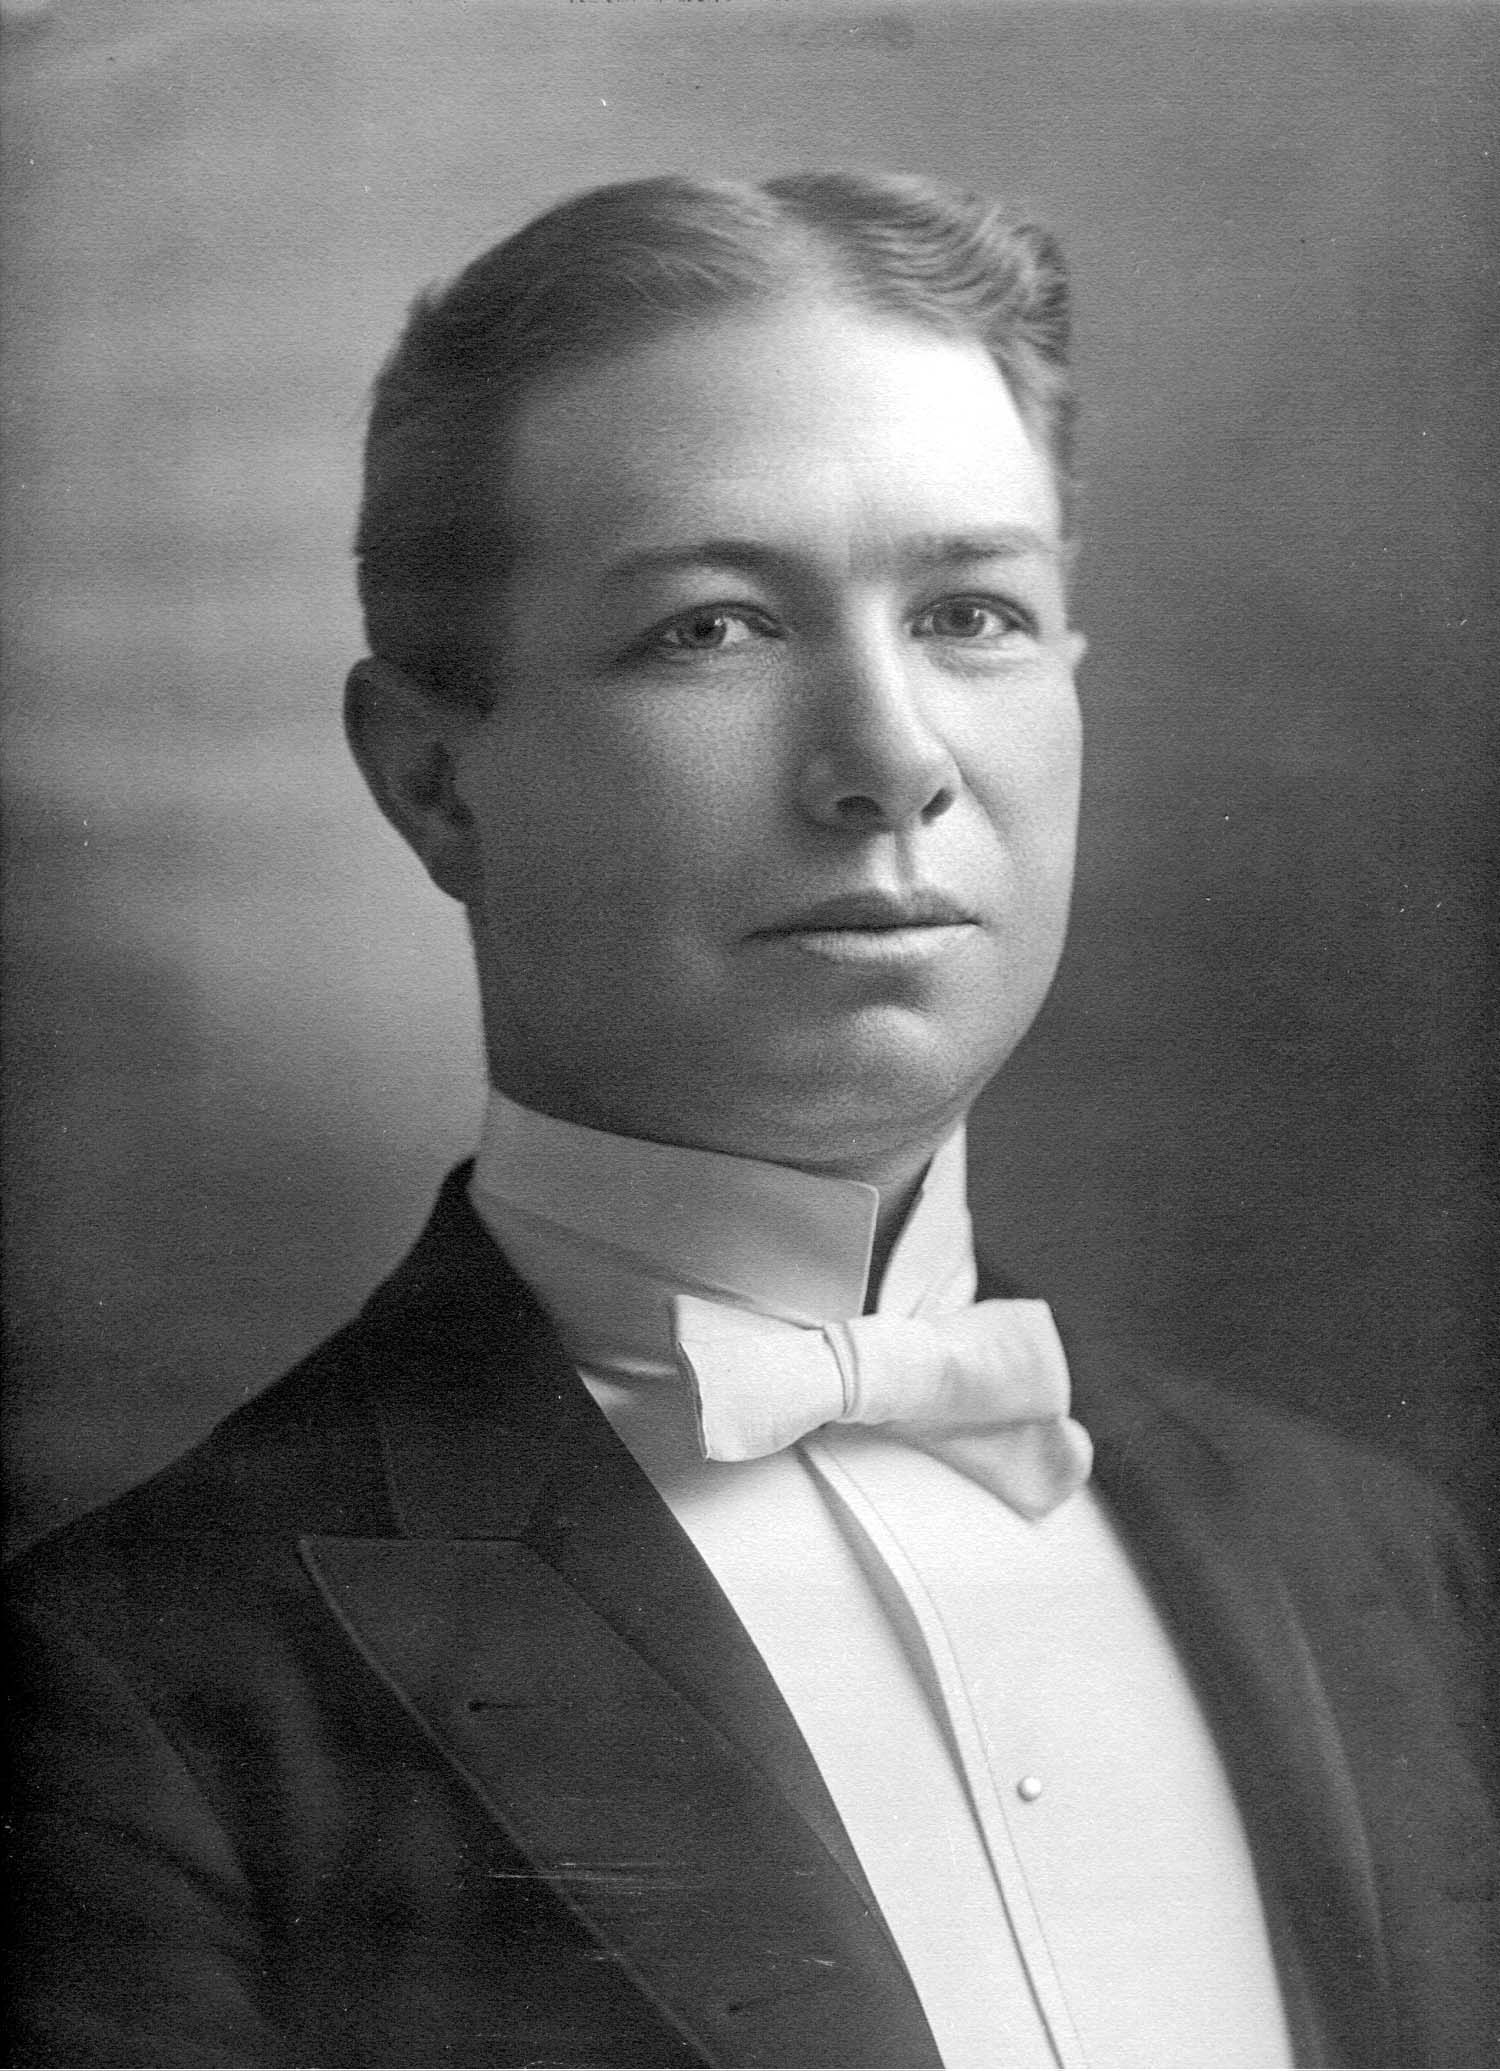 George V. Blackstone, Blackstone Manufacturing Company, Founder and President of the Manufacturers Association from 1901-1902.